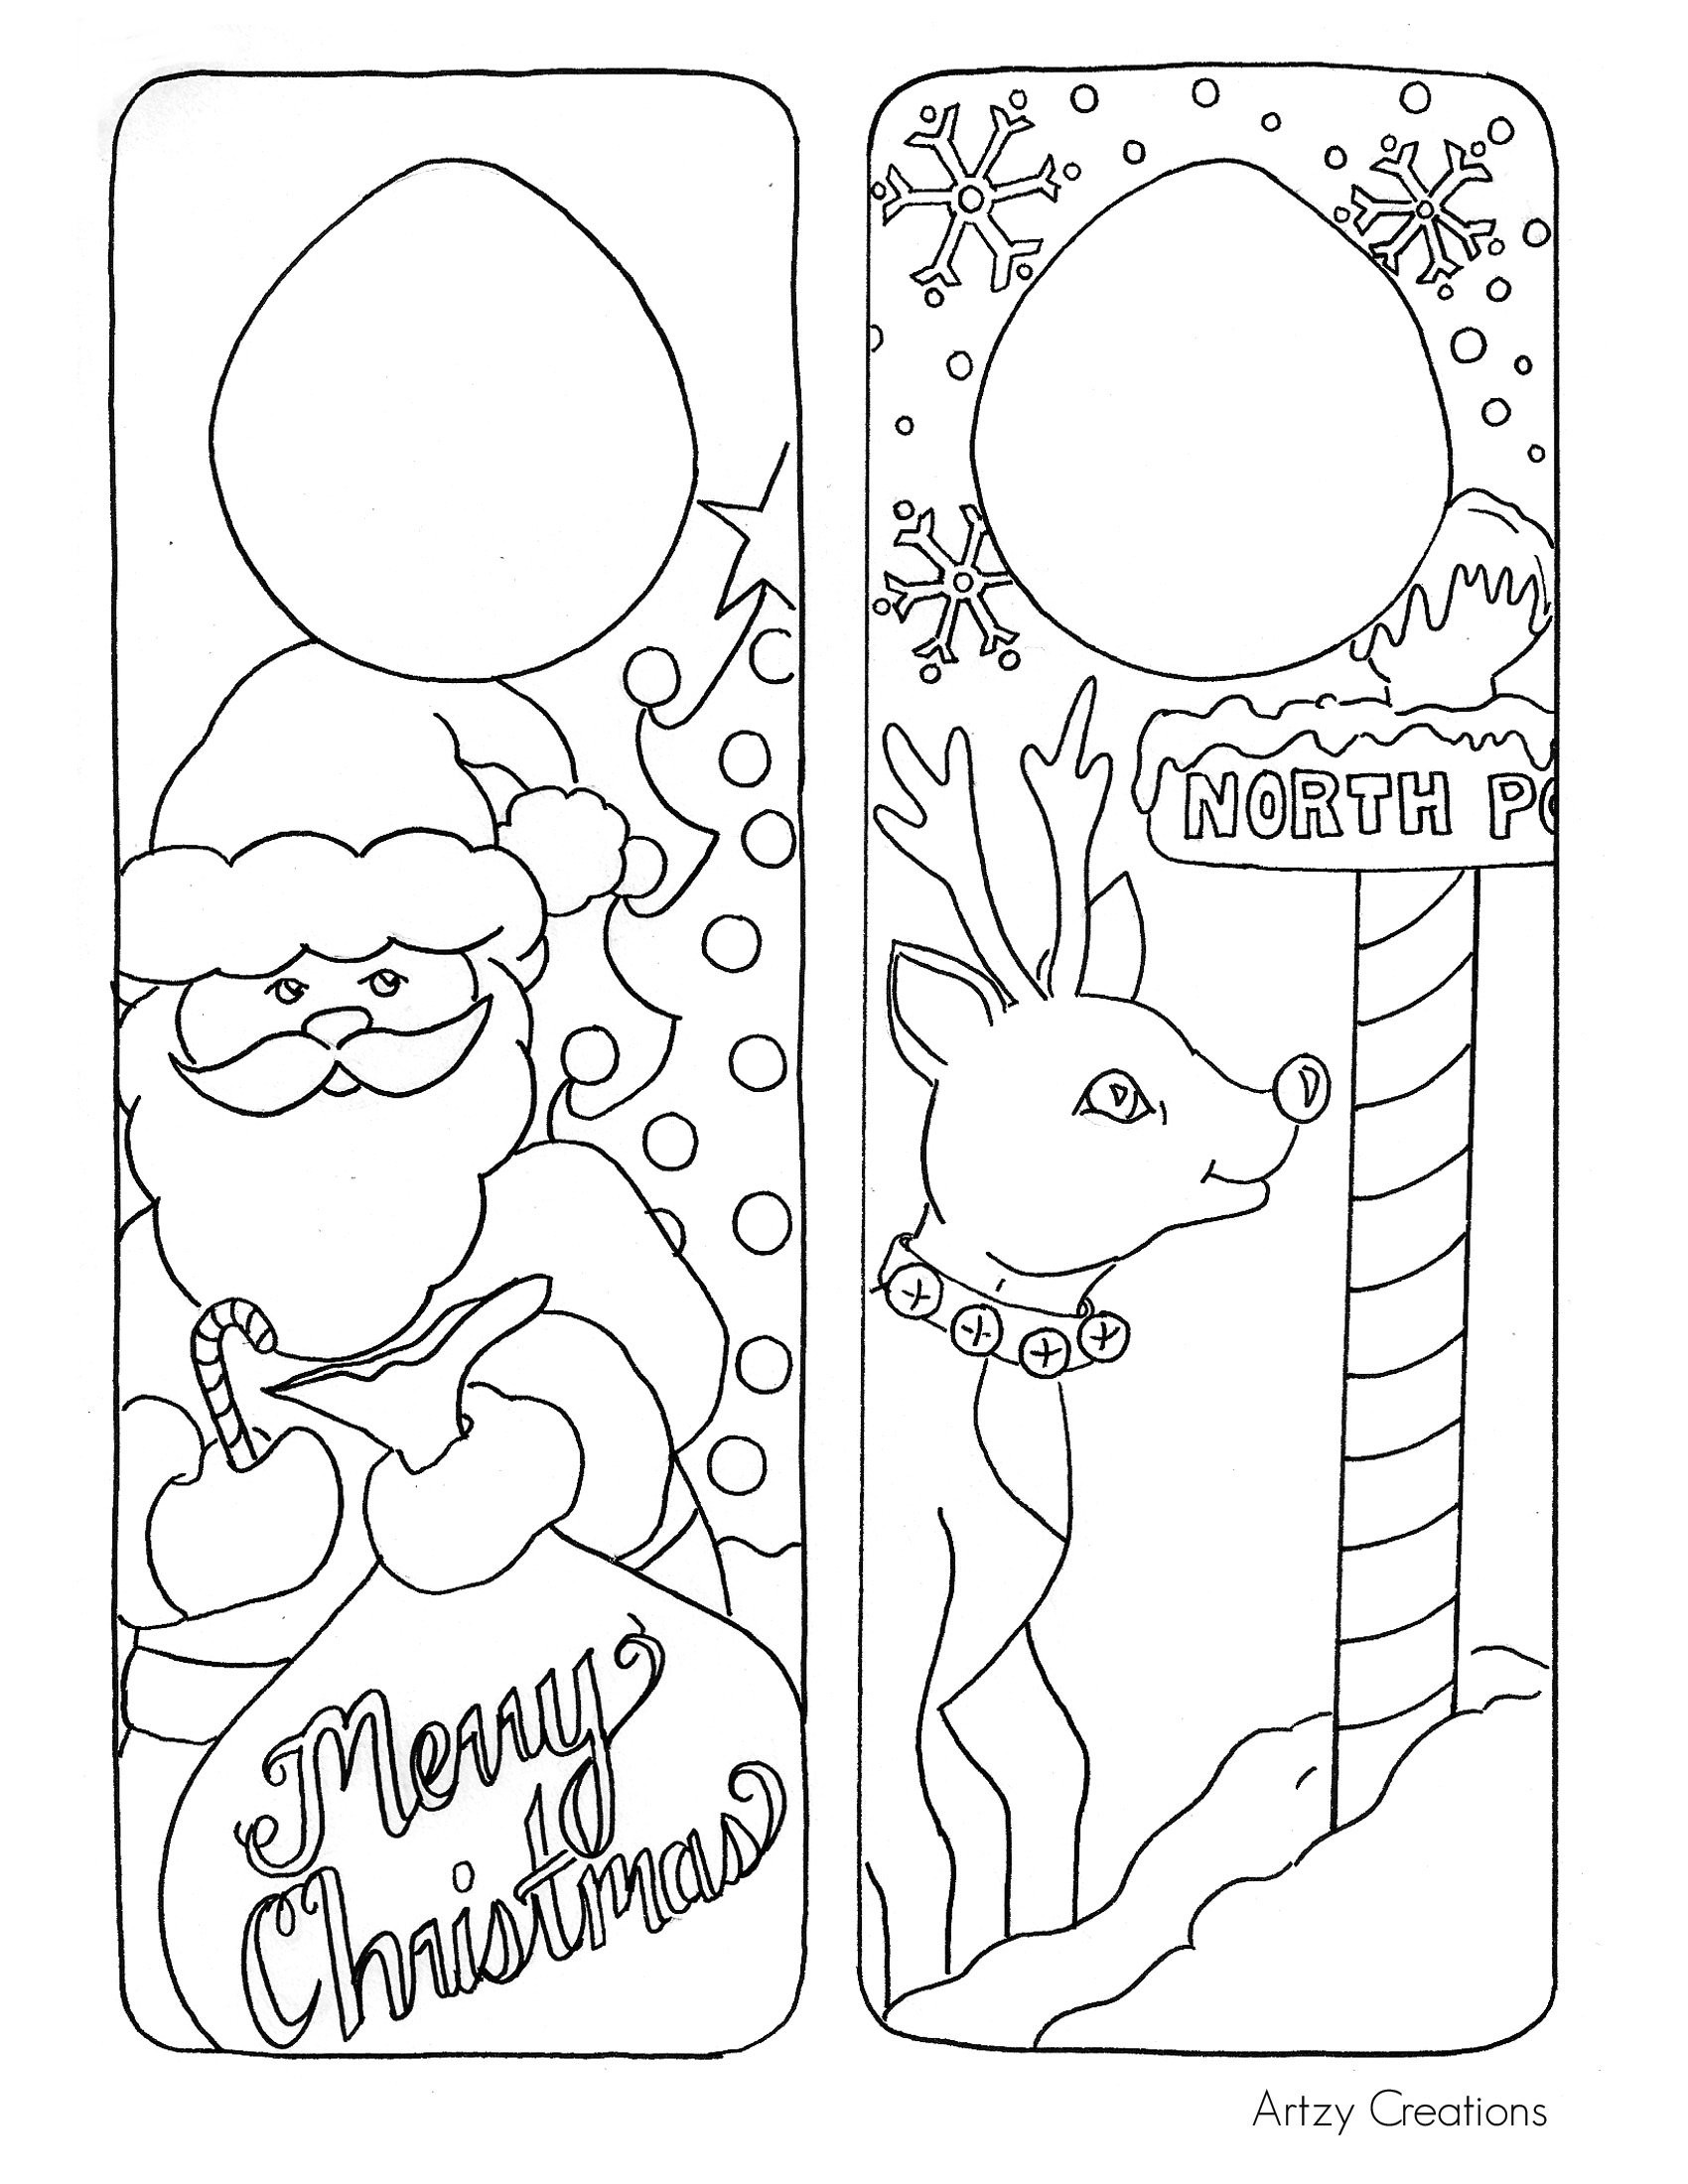 image regarding Printable Craft Templates identify Xmas Craft Templates Printable - Xmas Printables